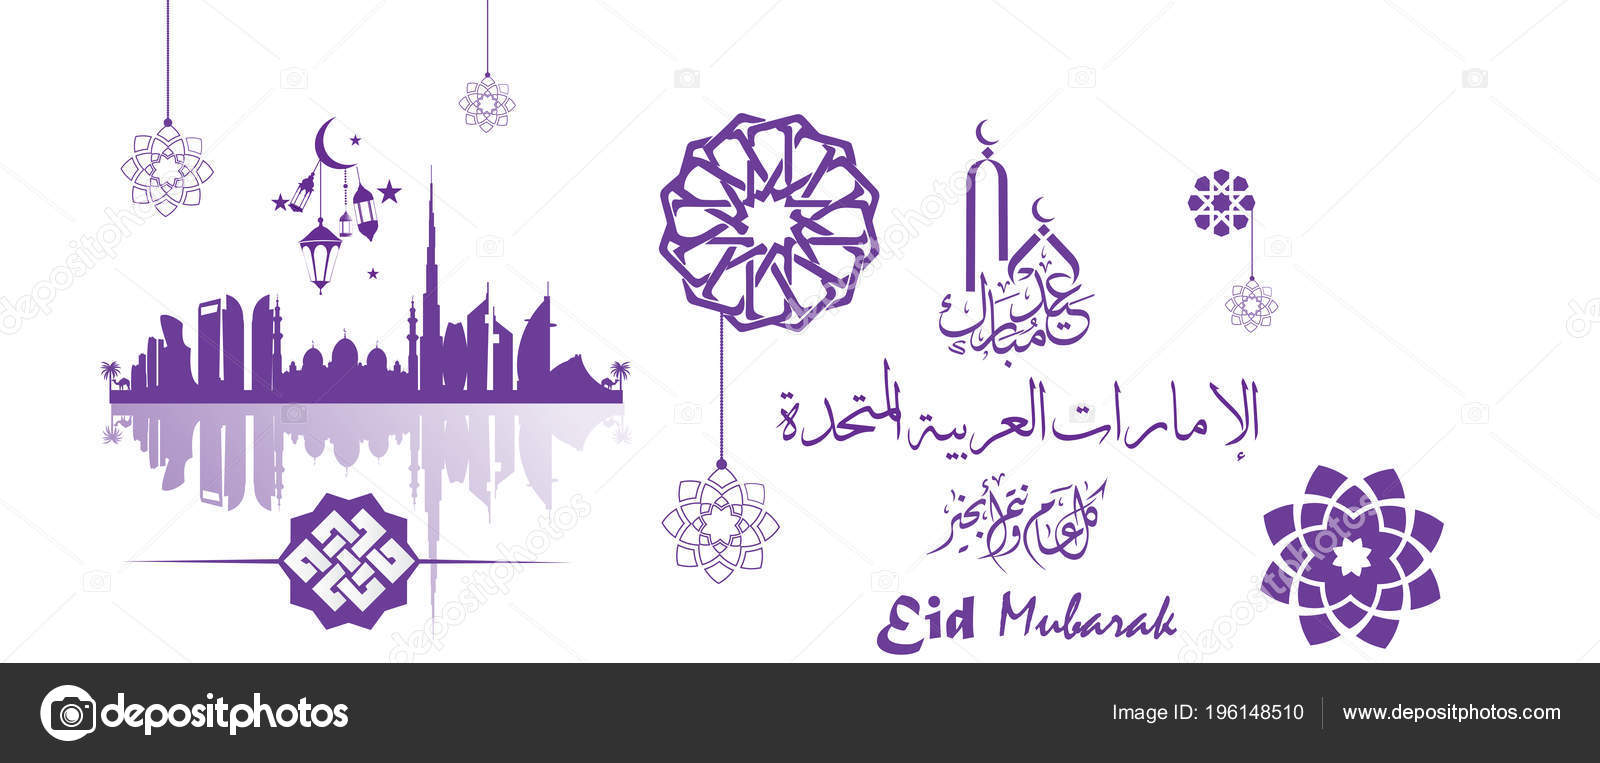 Eid mubarak greetings cards united arab emirates uae people arabic eid mubarak greetings cards united arab emirates uae people arabic stock vector m4hsunfo